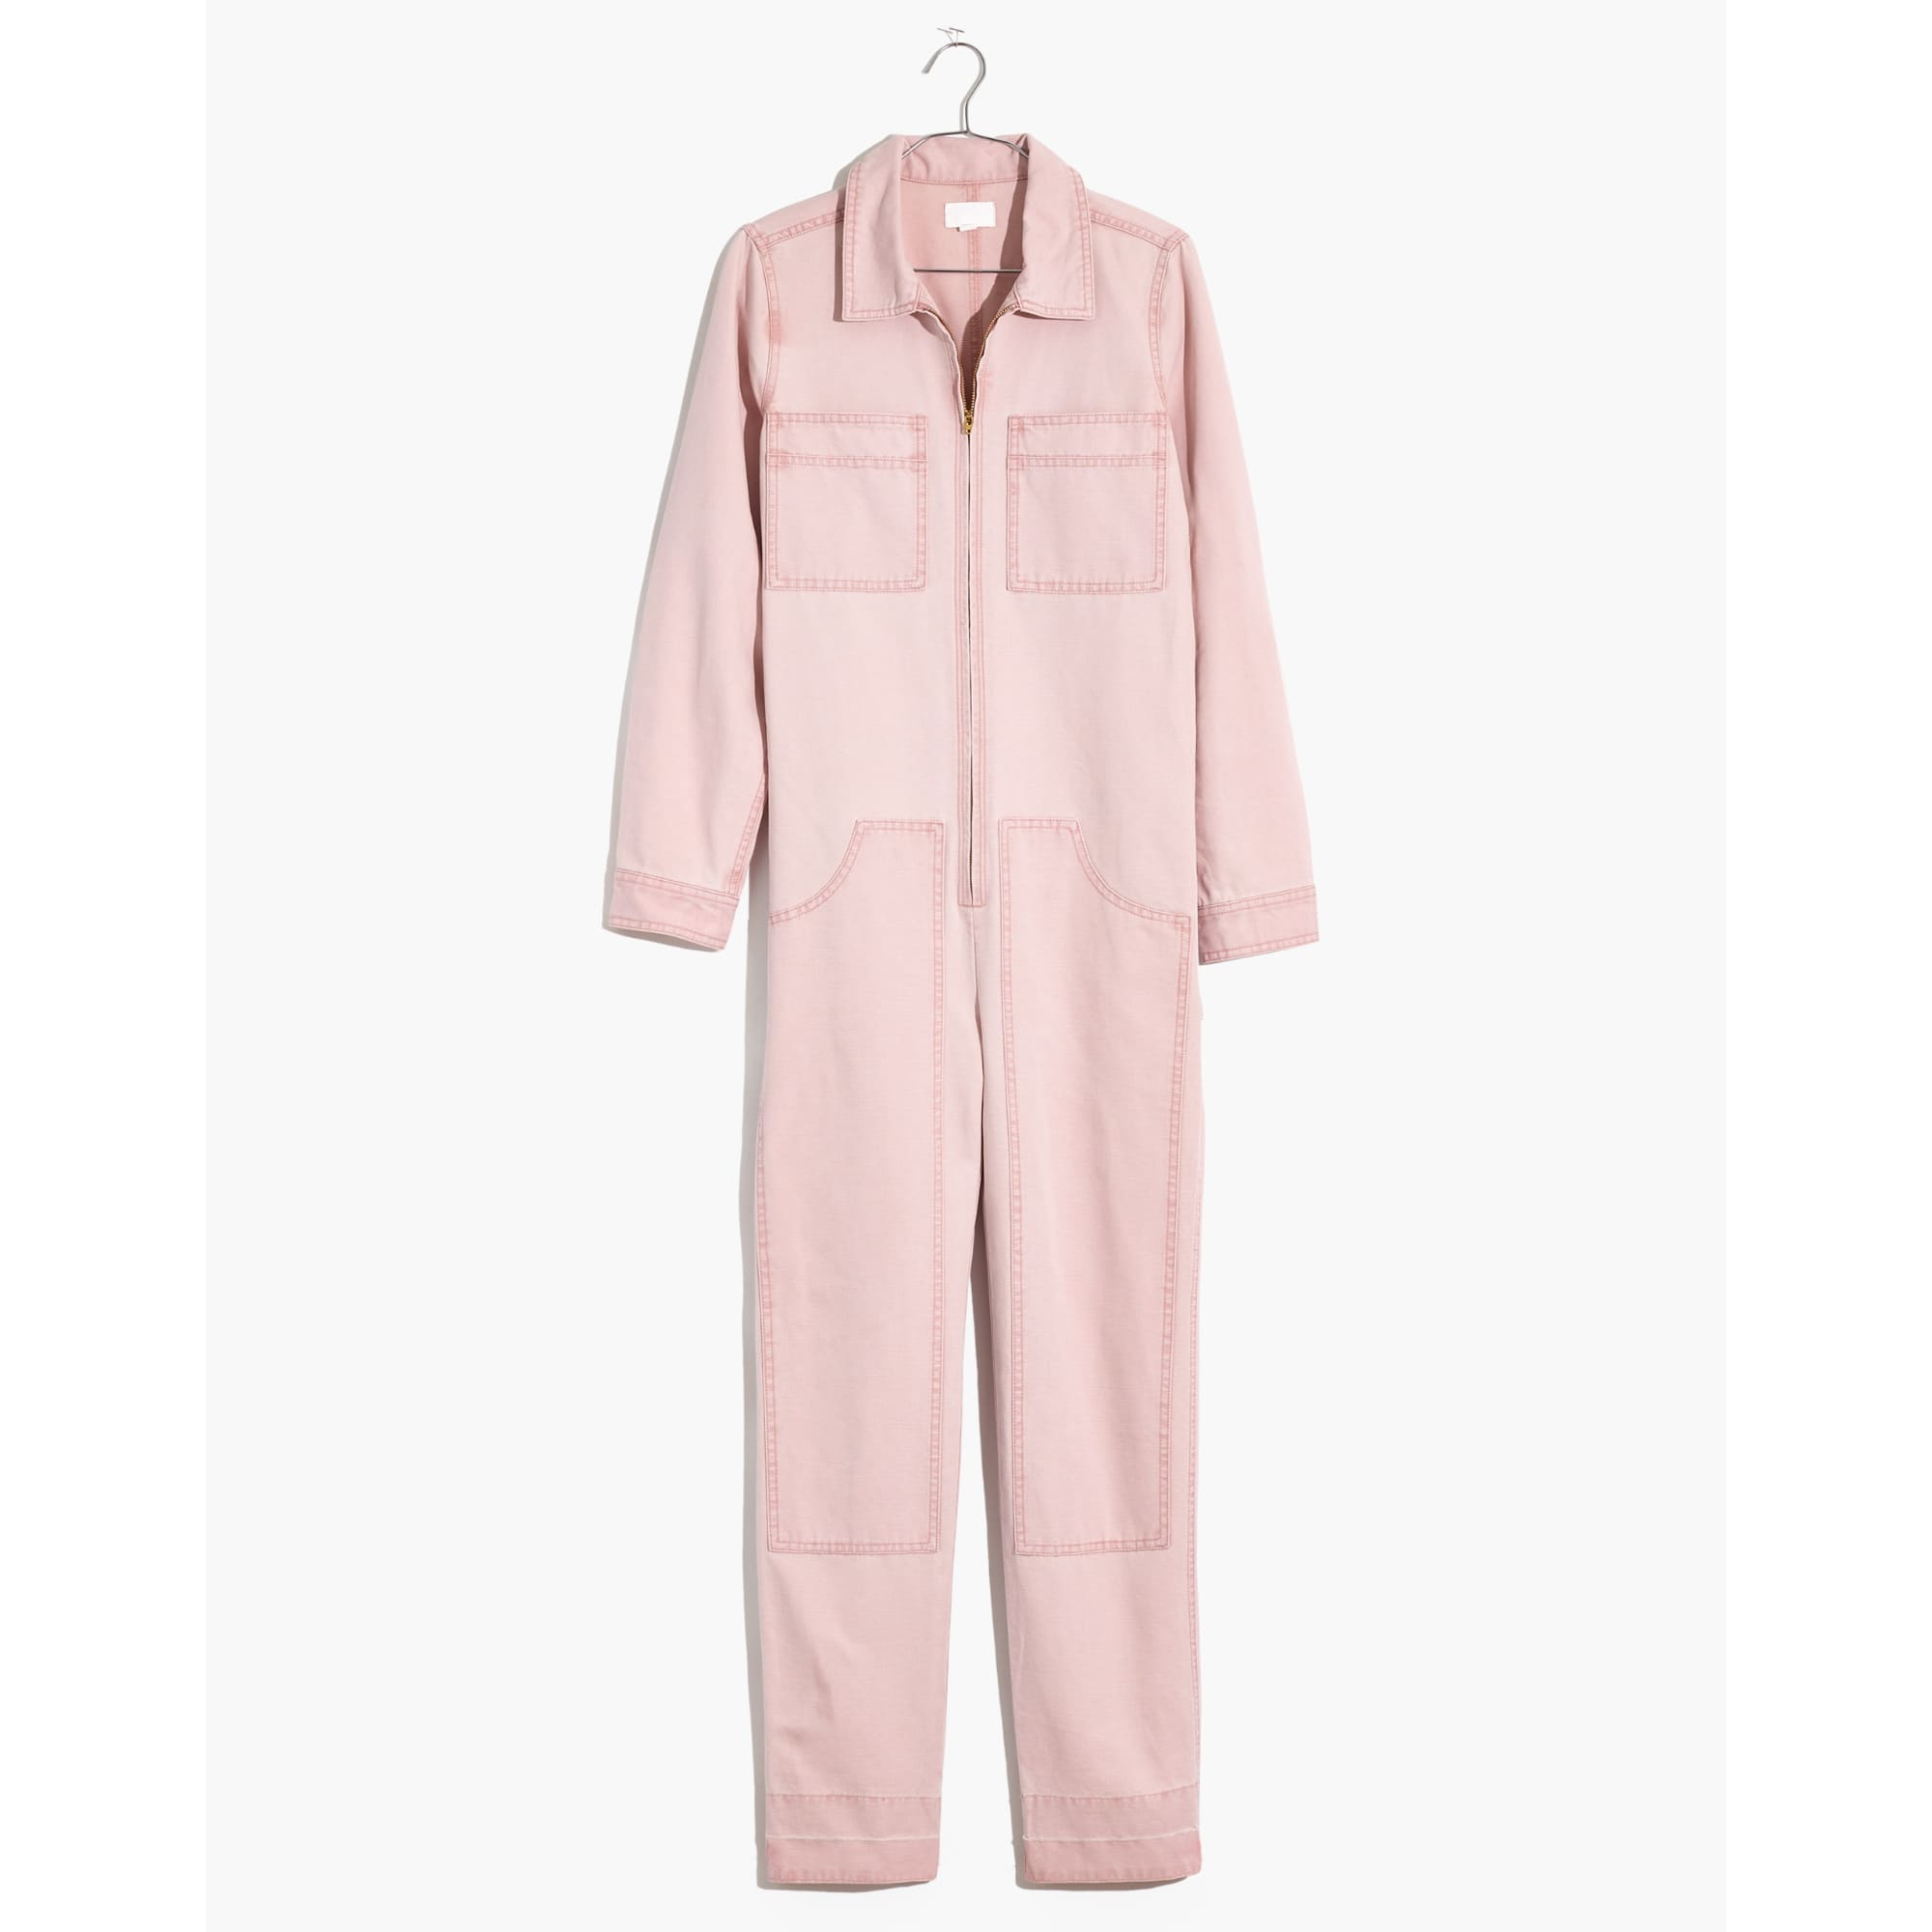 Madewell x Dickies® Zip Coverall Jumpsuit